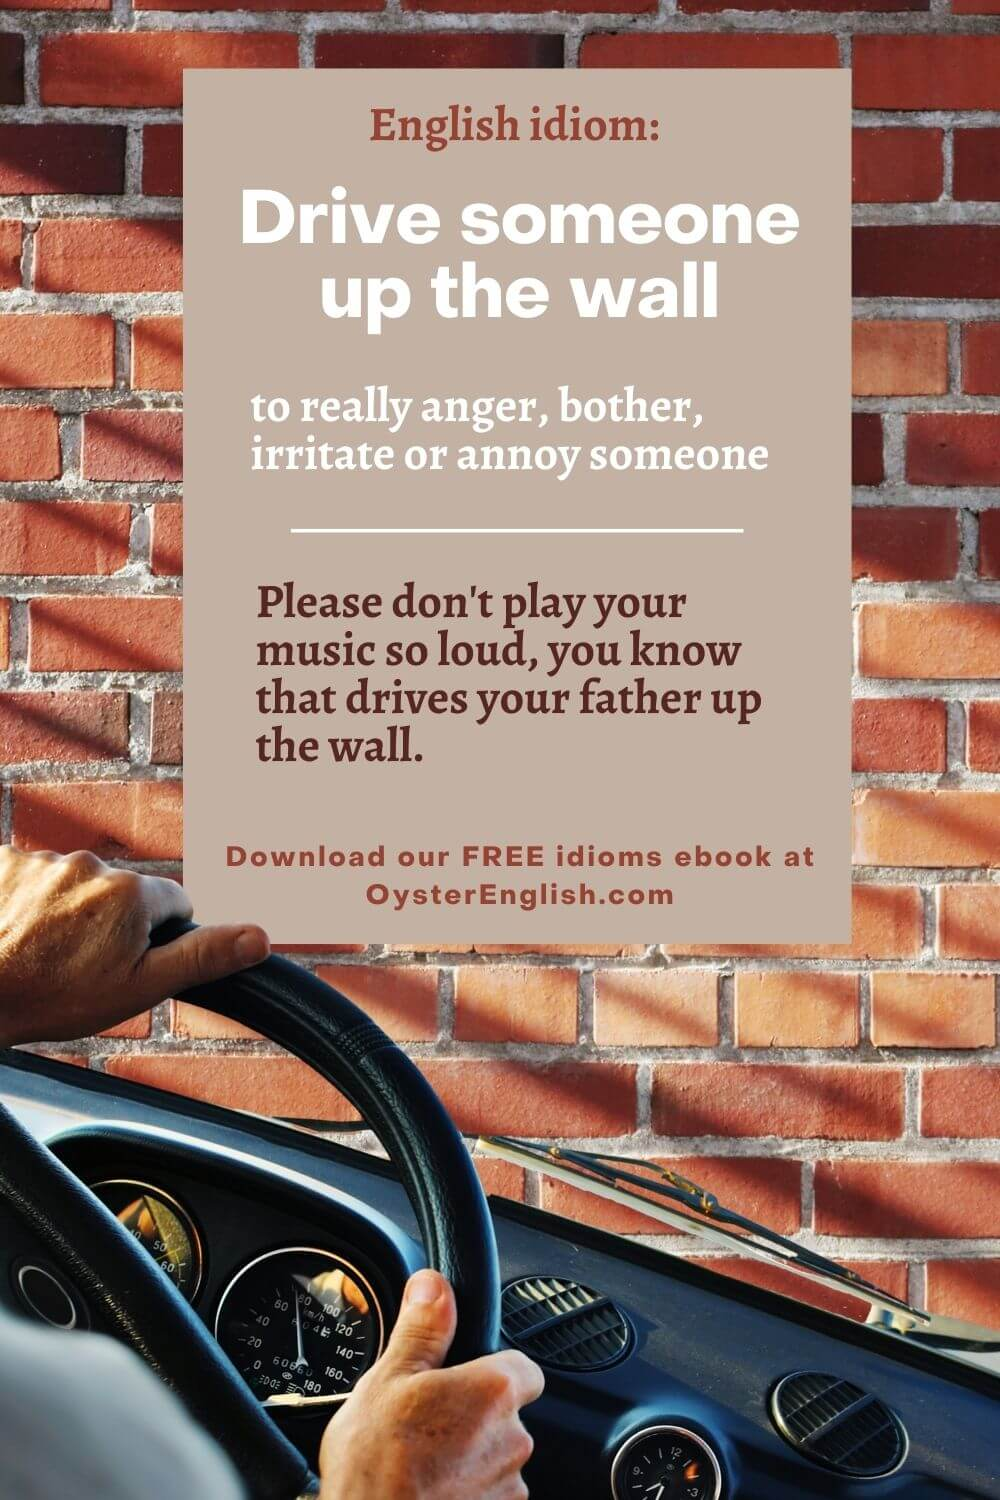 Image of a person's hands driving at the wheel of a car against a wall background. Caption: Please don't play your music so loud, you know it drives your father up the wall.